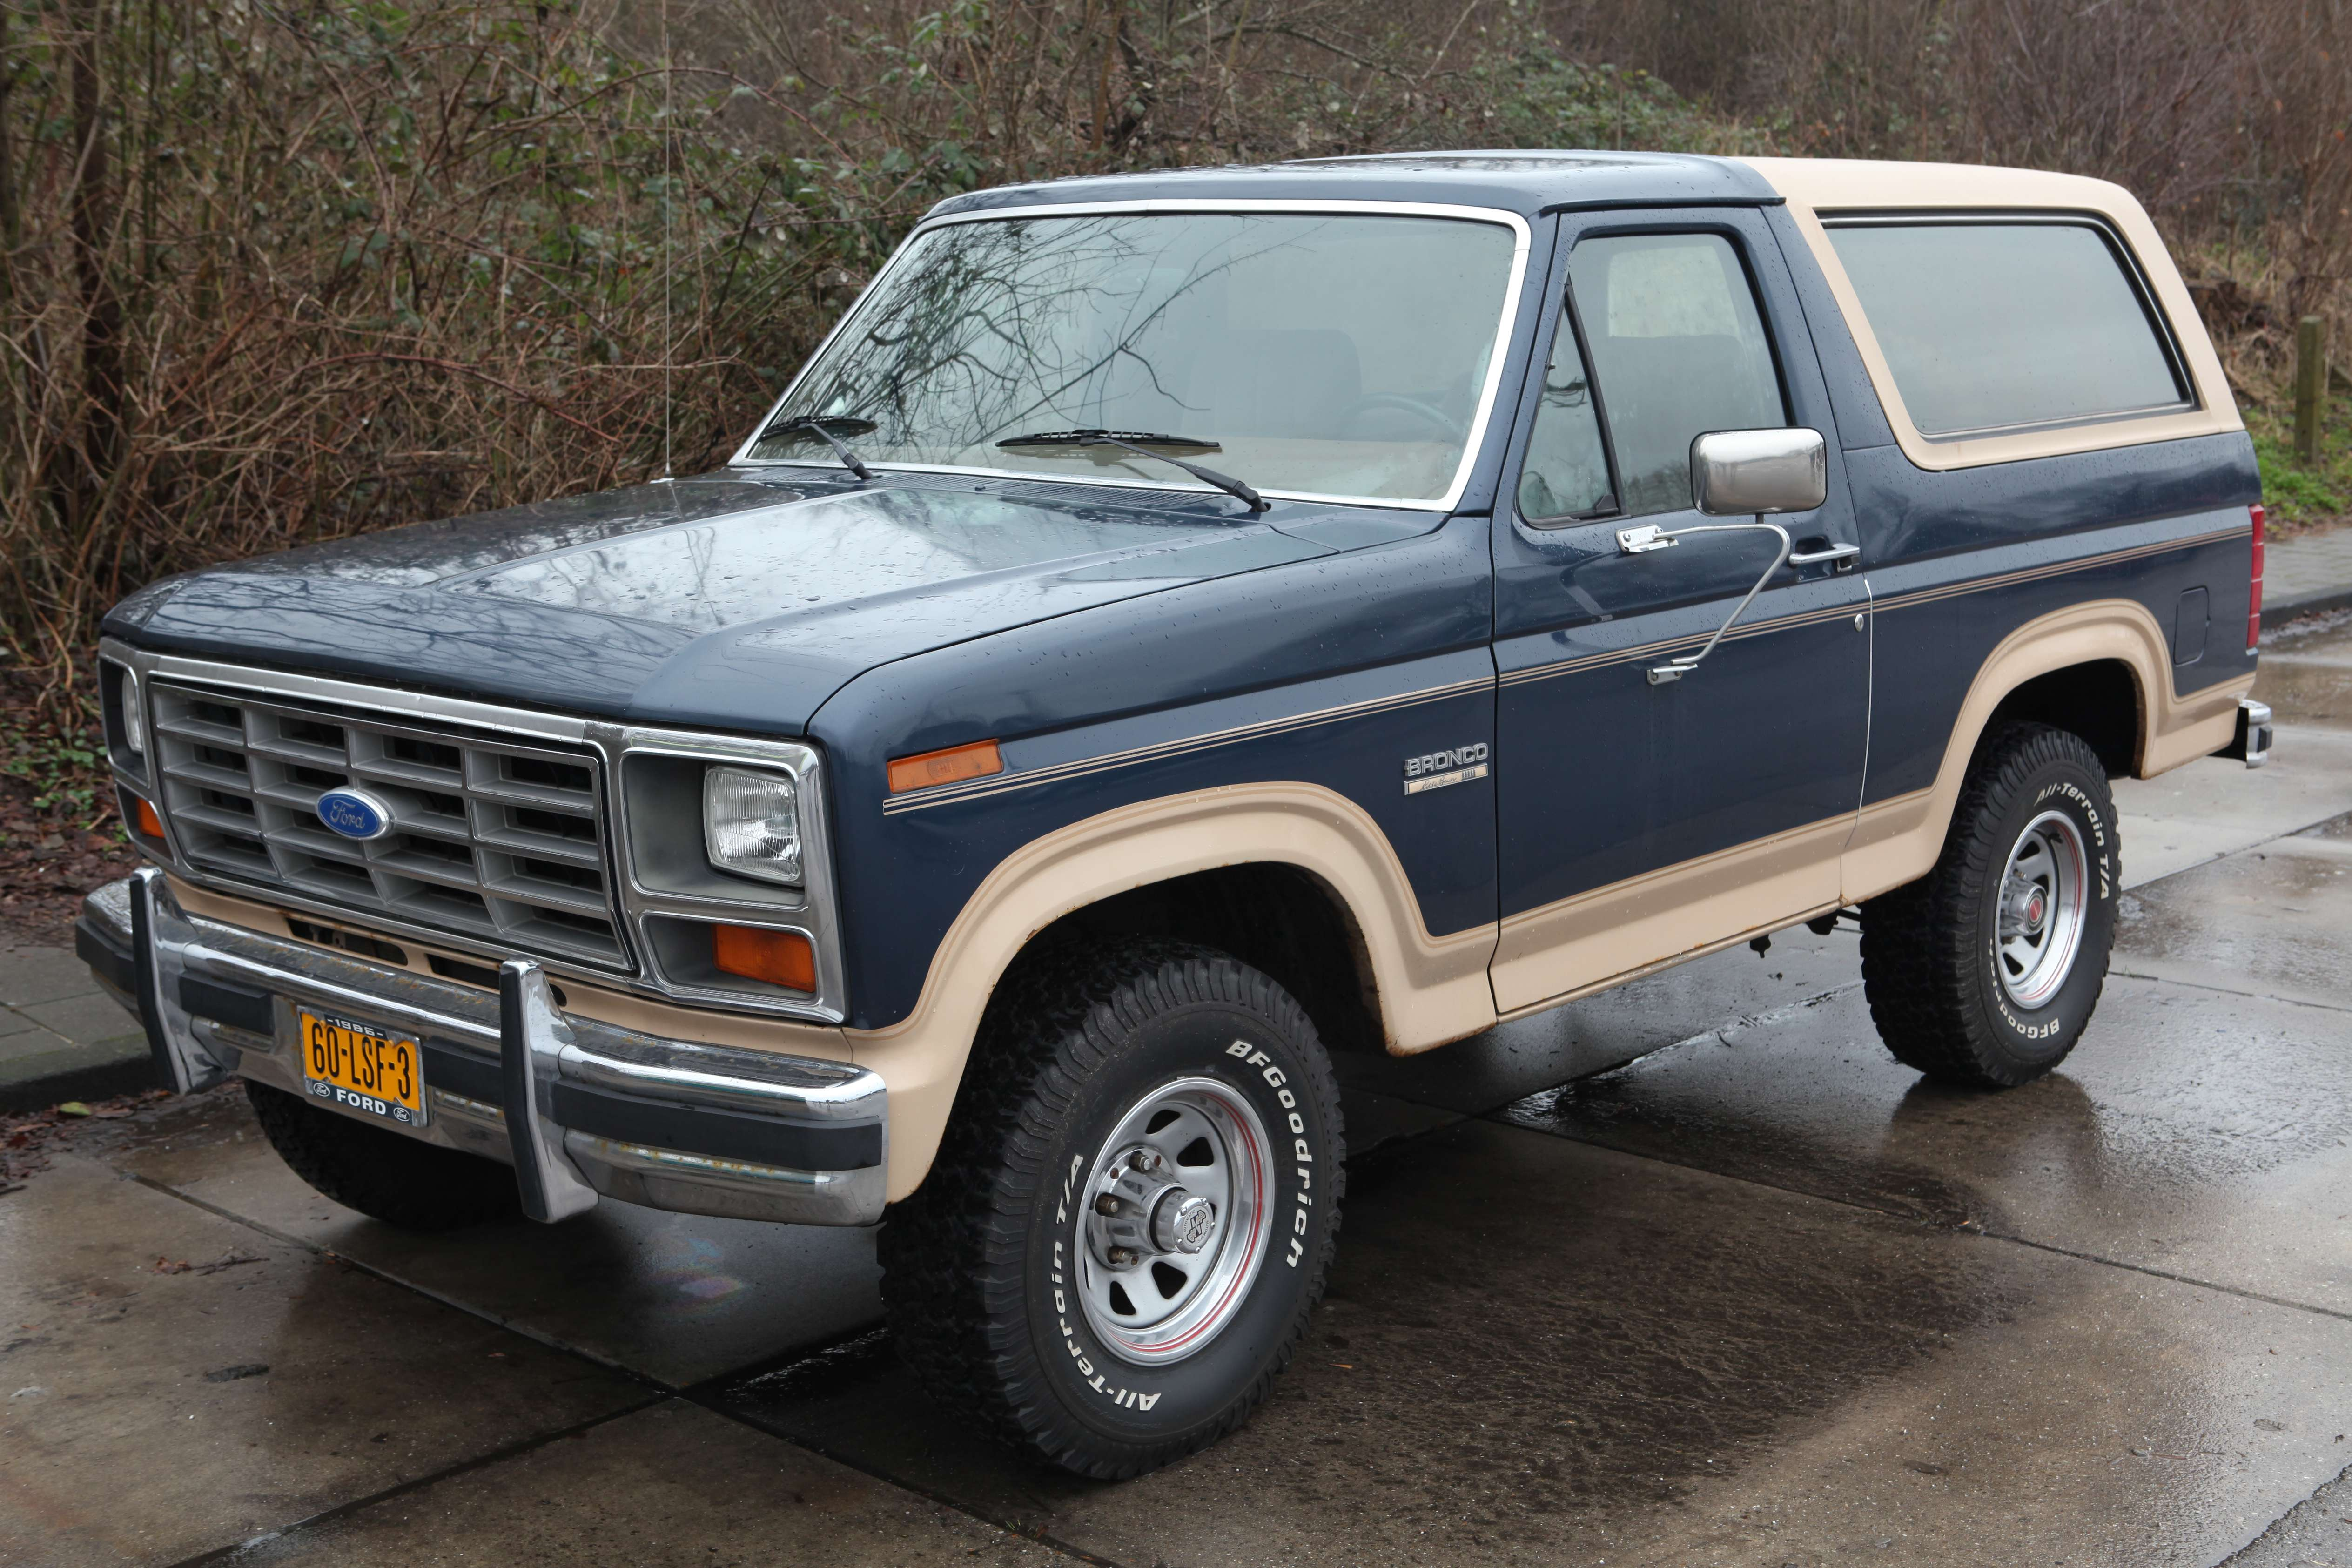 Ford Bronco #7820432